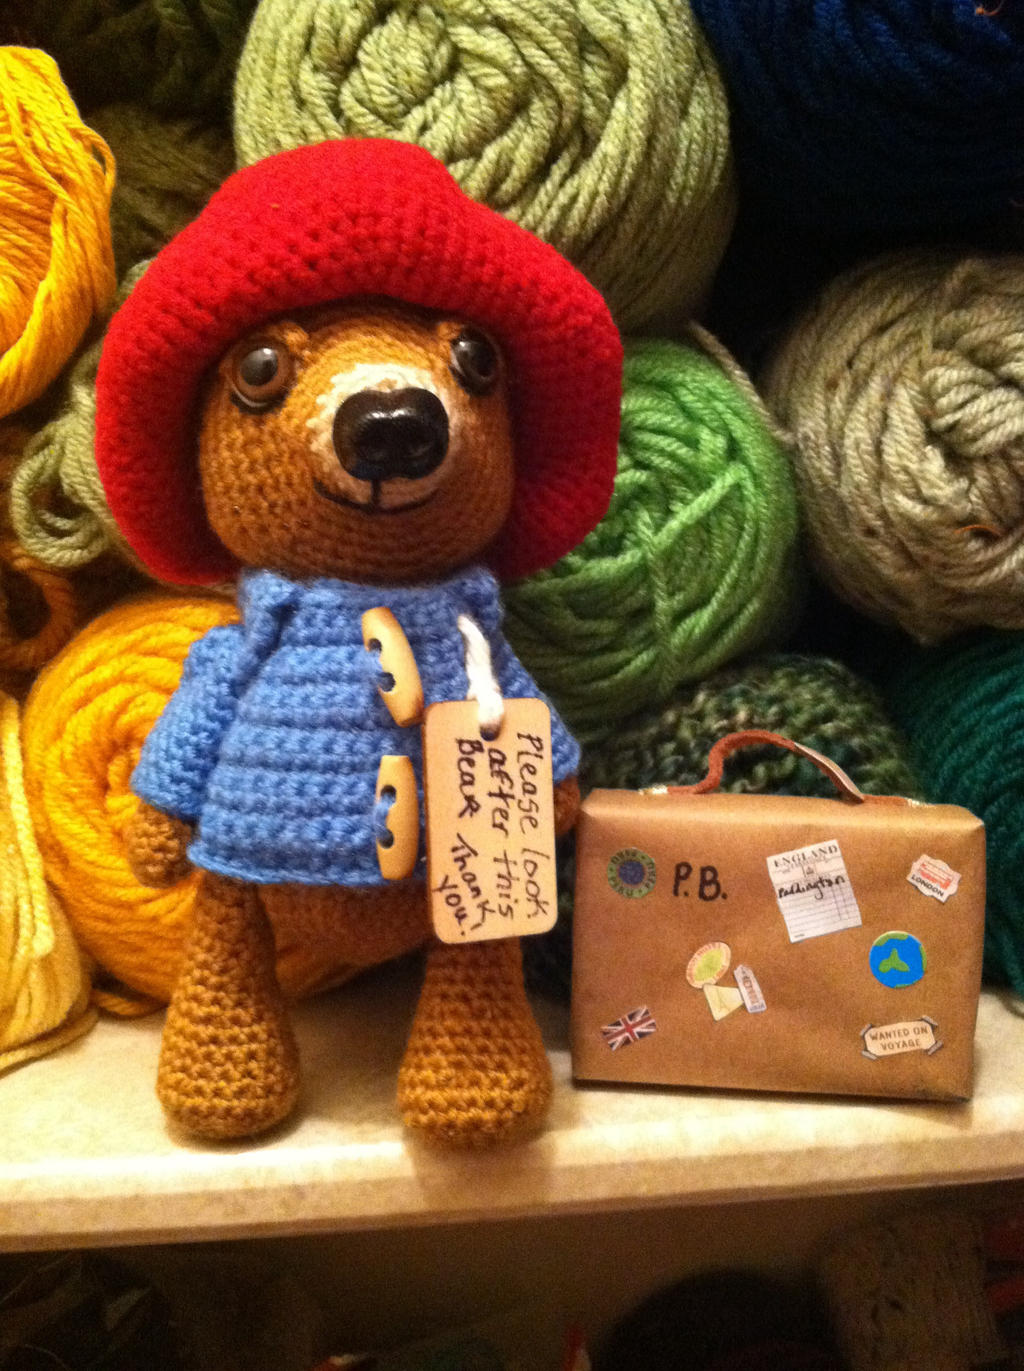 Amigurumi Paddington Bear : Paddington Bear Amigurumi by Yarnigurumi on DeviantArt